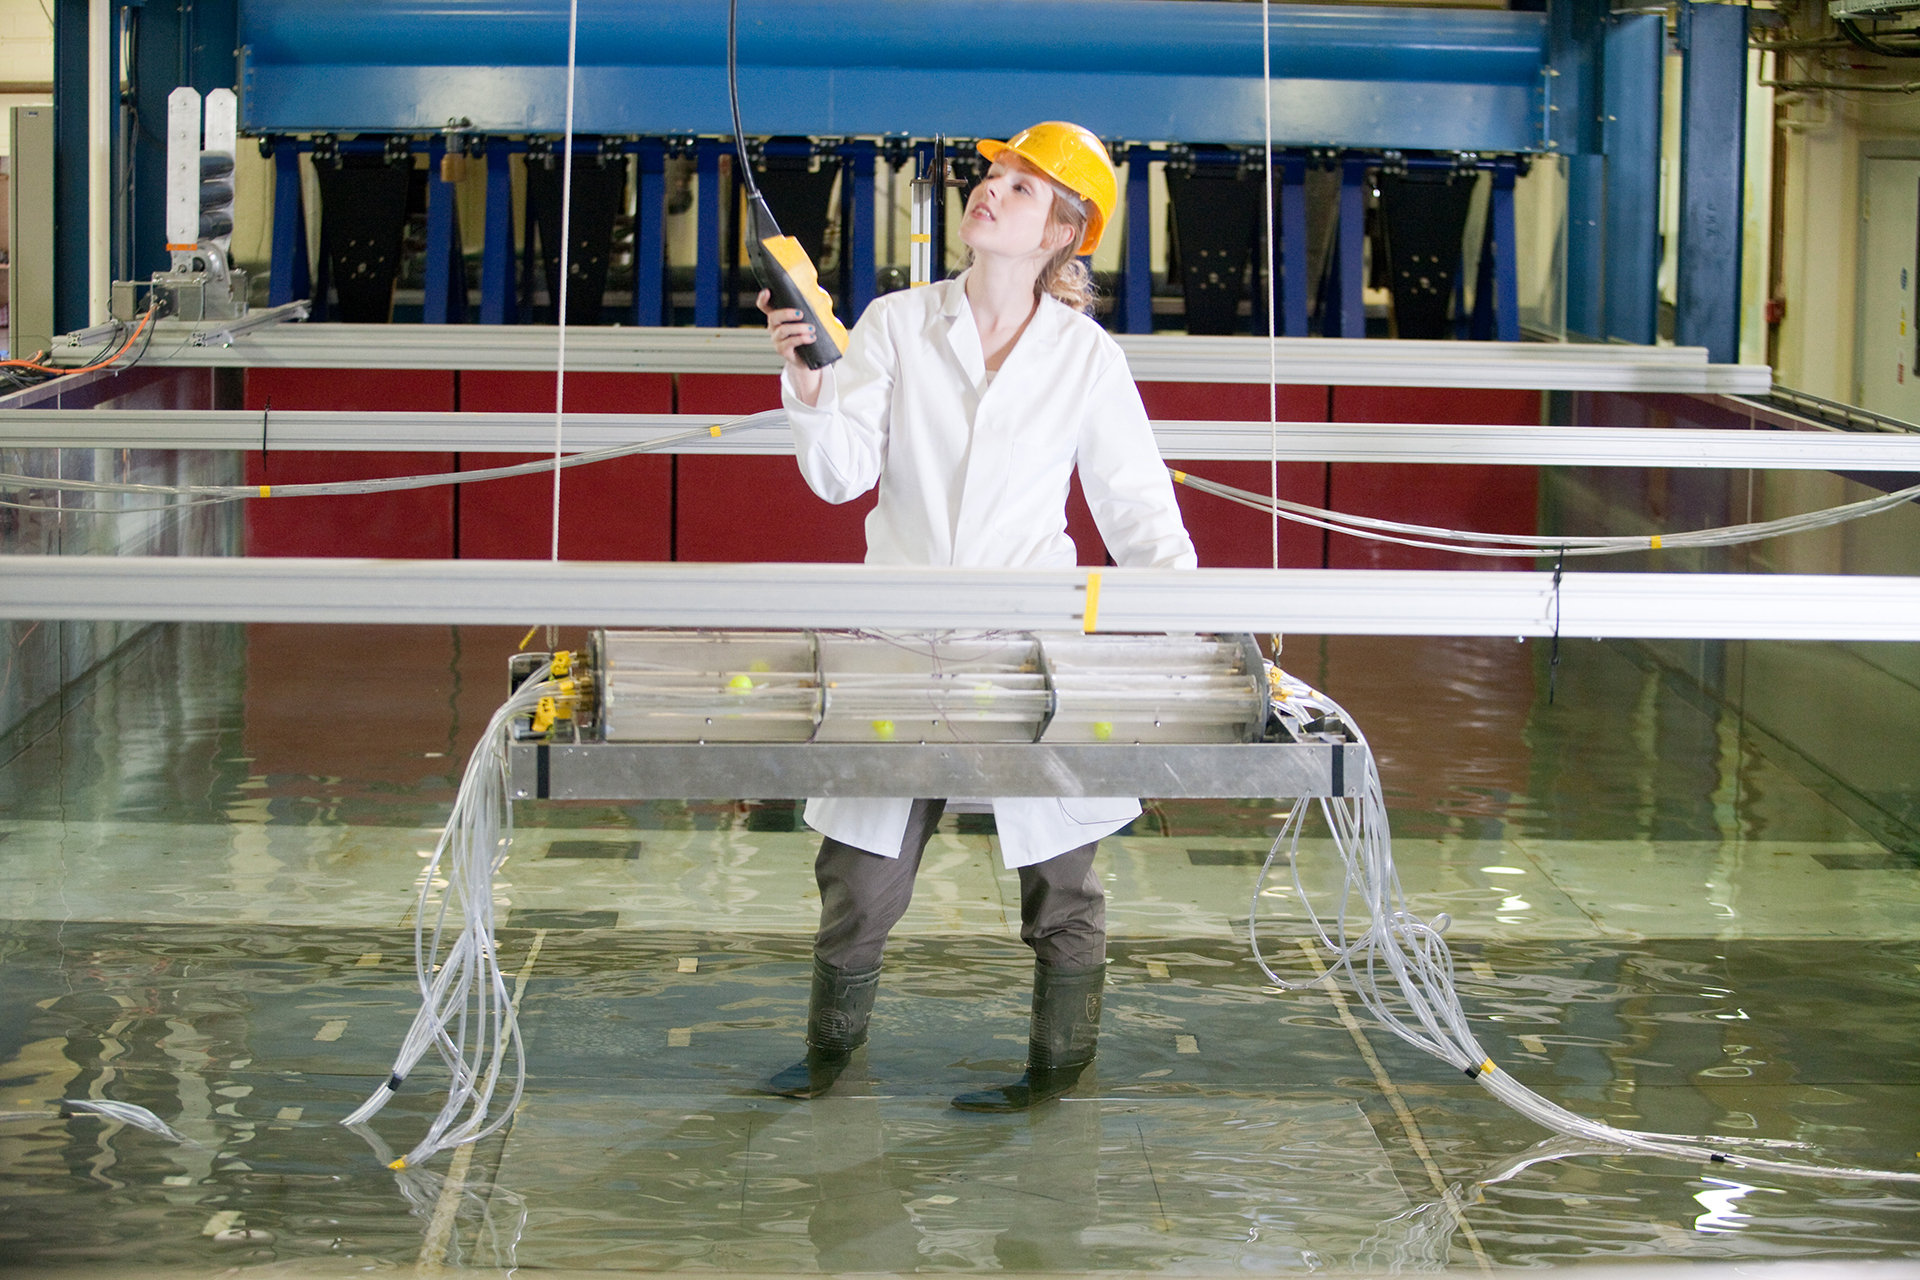 INTO student conducting tests in a water tank